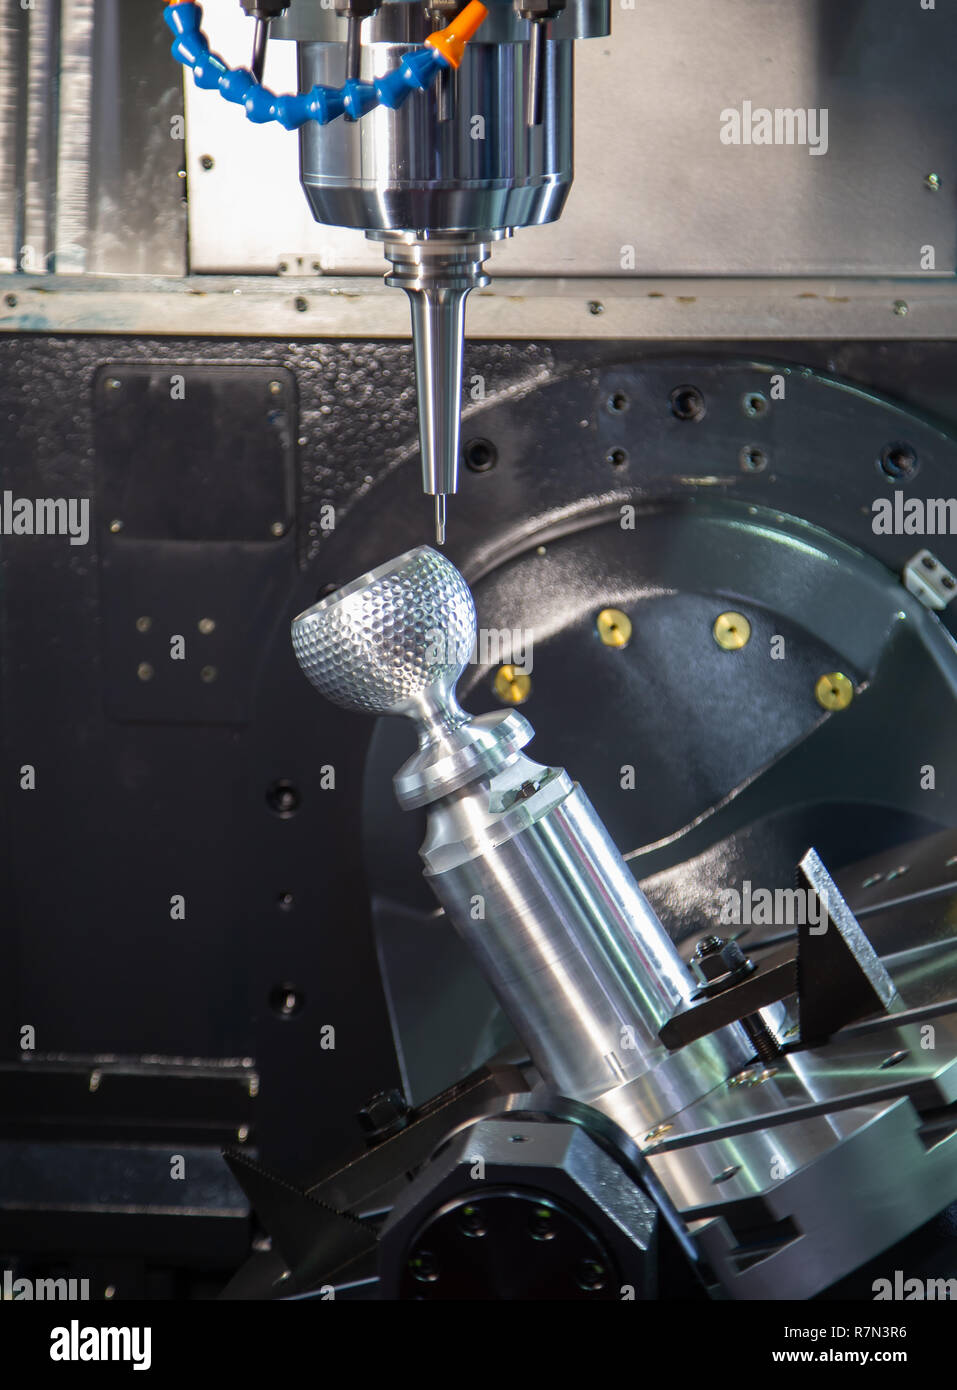 Machining steel cup on industrial milling machine - Stock Image